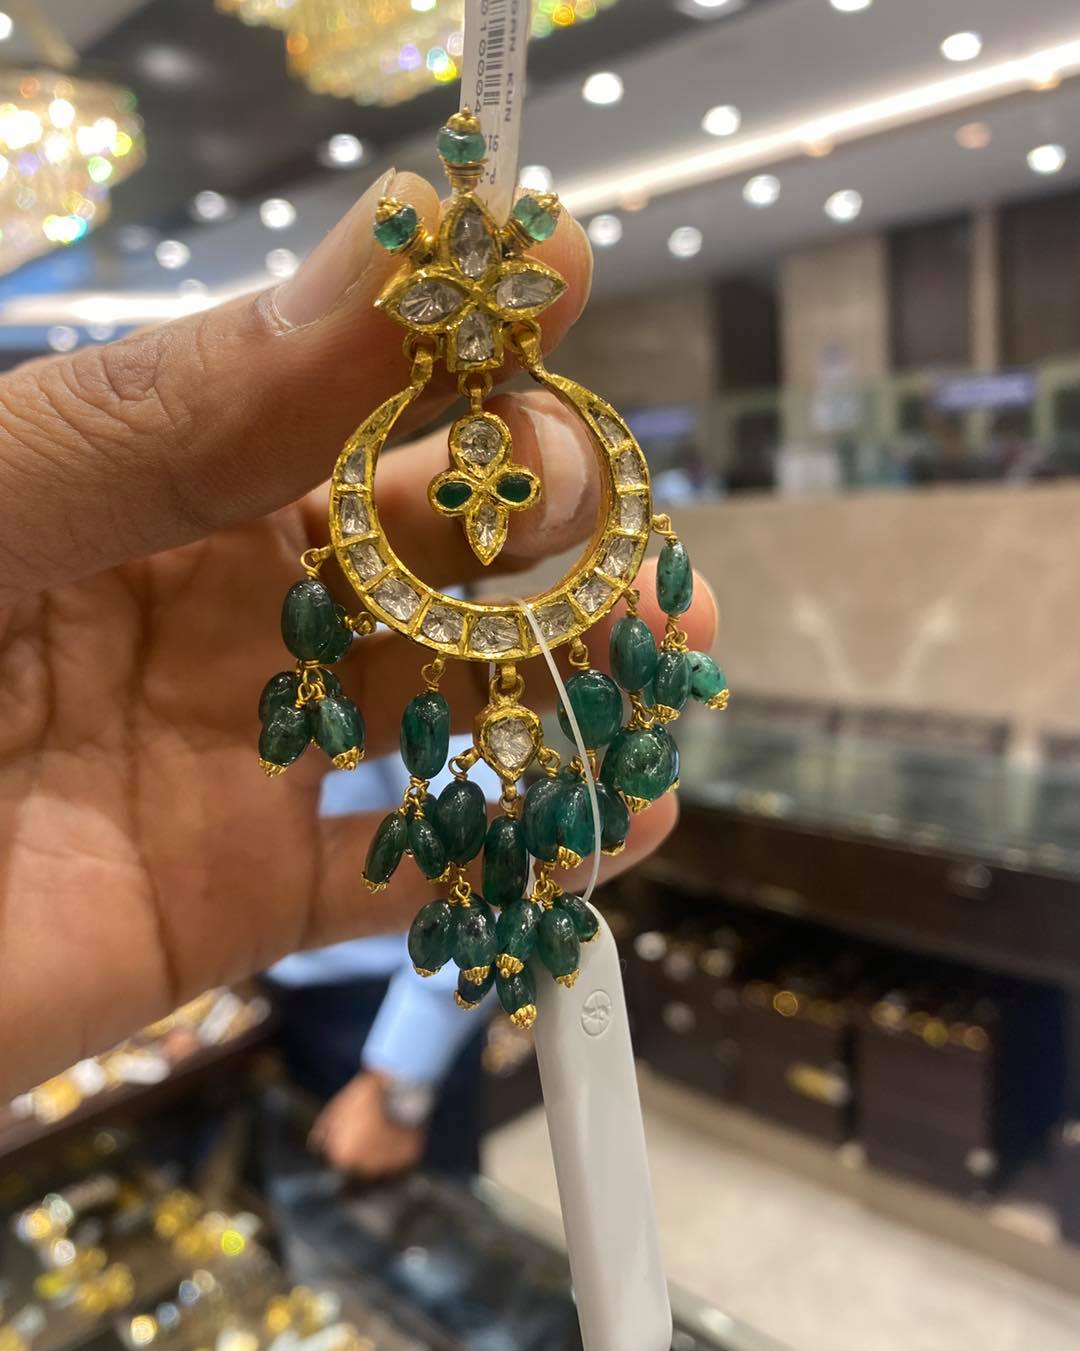 Gorgeous 22k gold chaandbalis studded with multi precious stones and emerald hangings.  2021-05-25